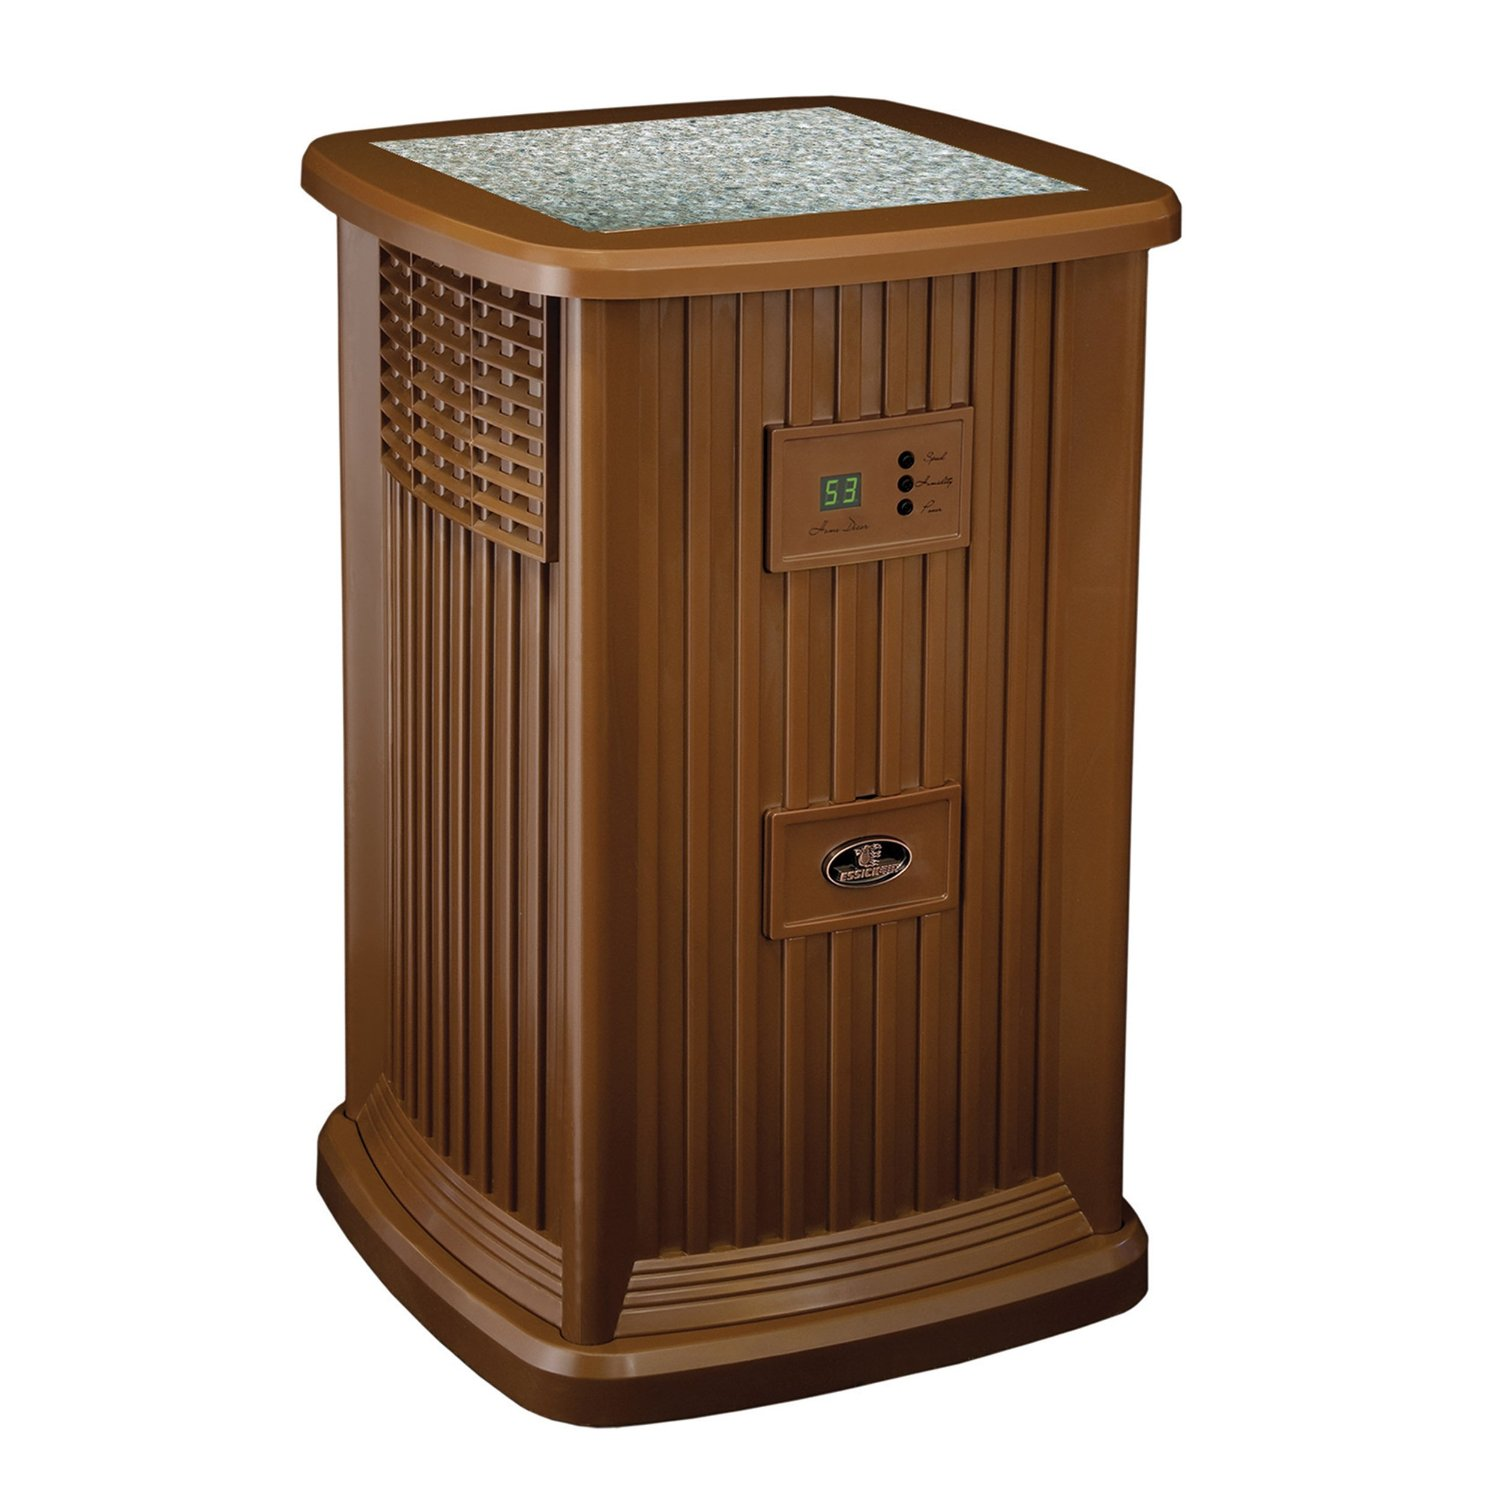 EP9 500 Whole House Evaporative Digital Pedestal Humidifier Nutmeg #412413